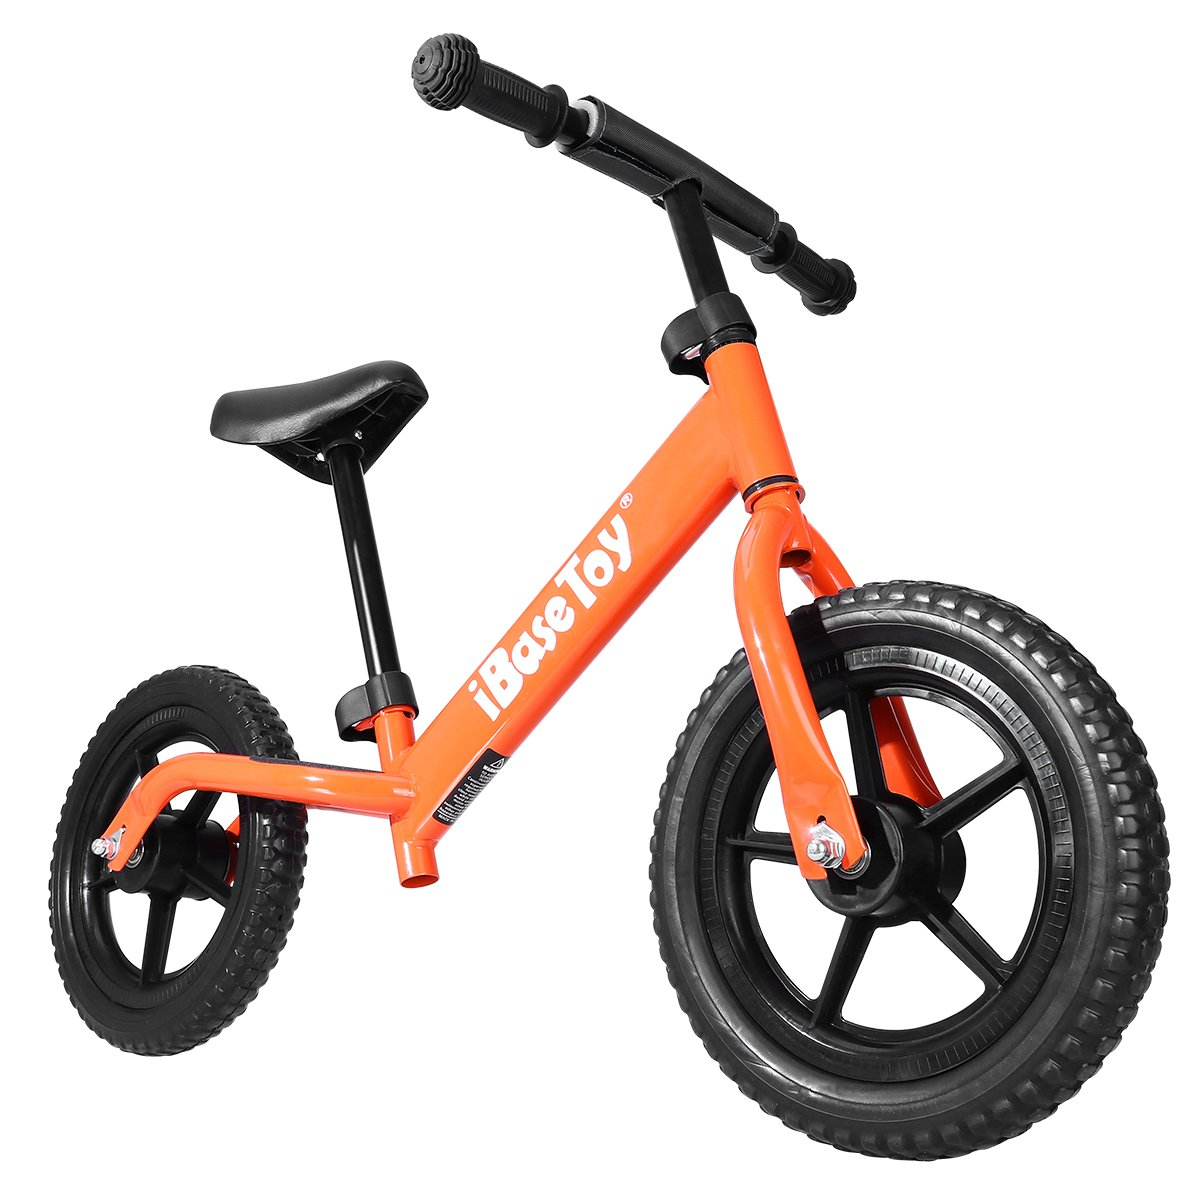 iBaseToy Balance Bike, No Pedal Balancing Toddler Bike with Adjustable Seat and Handlebars, Lightweight Stride Walking Bicycle for Kids, Ages 2 to 6 Years